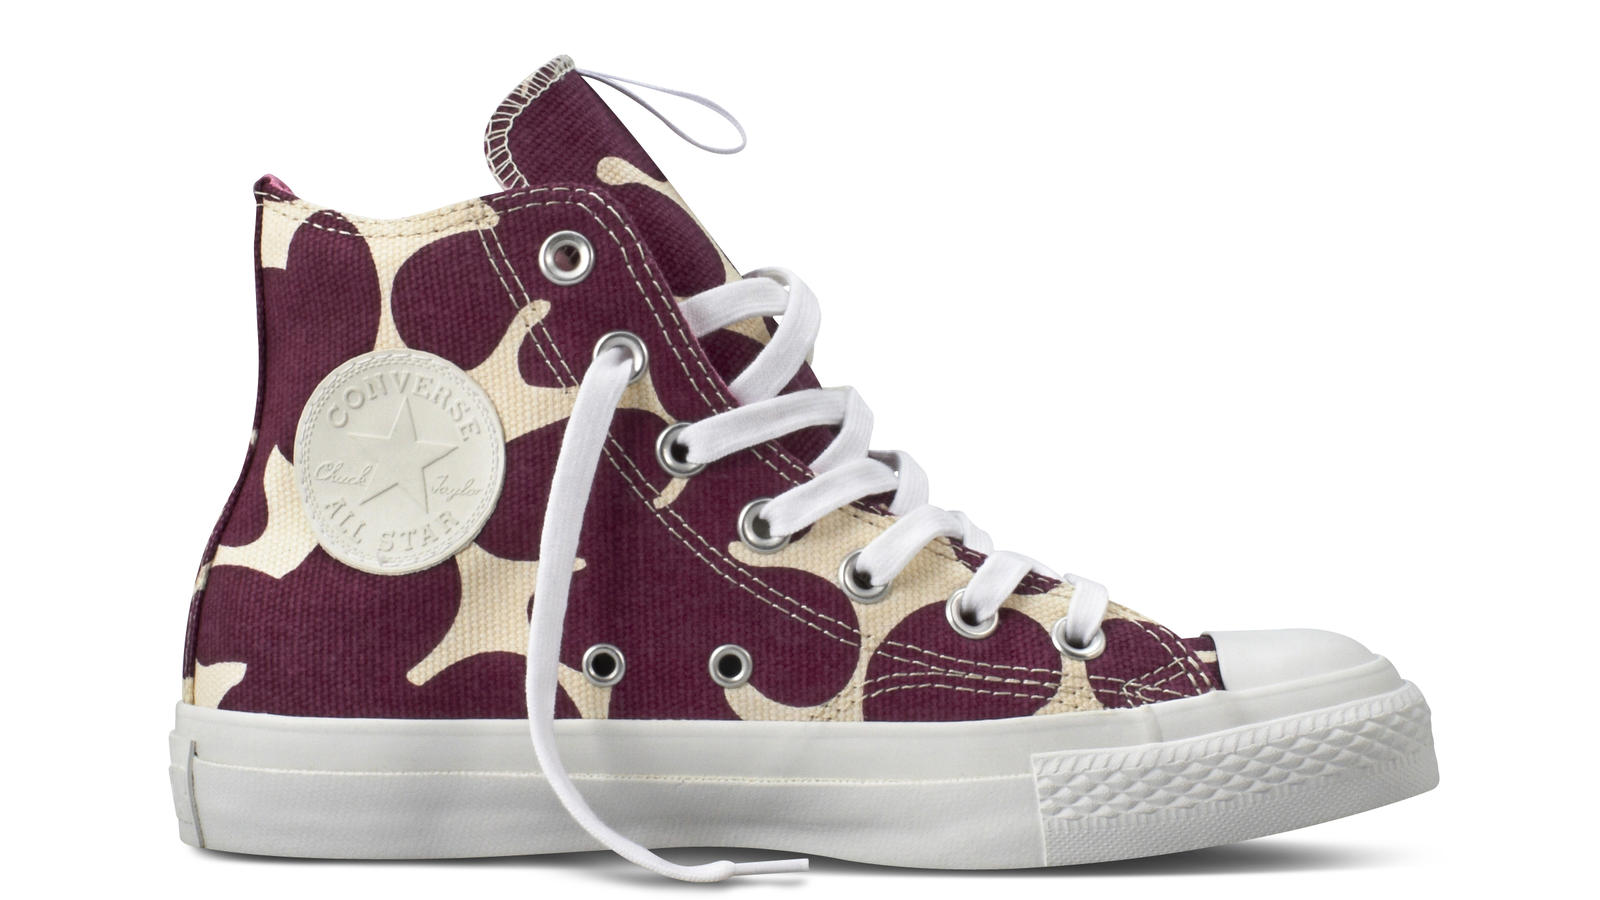 3626aaf65f7bf5 Converse launches Holiday 2011 Converse ♥ Marimekko collection ...